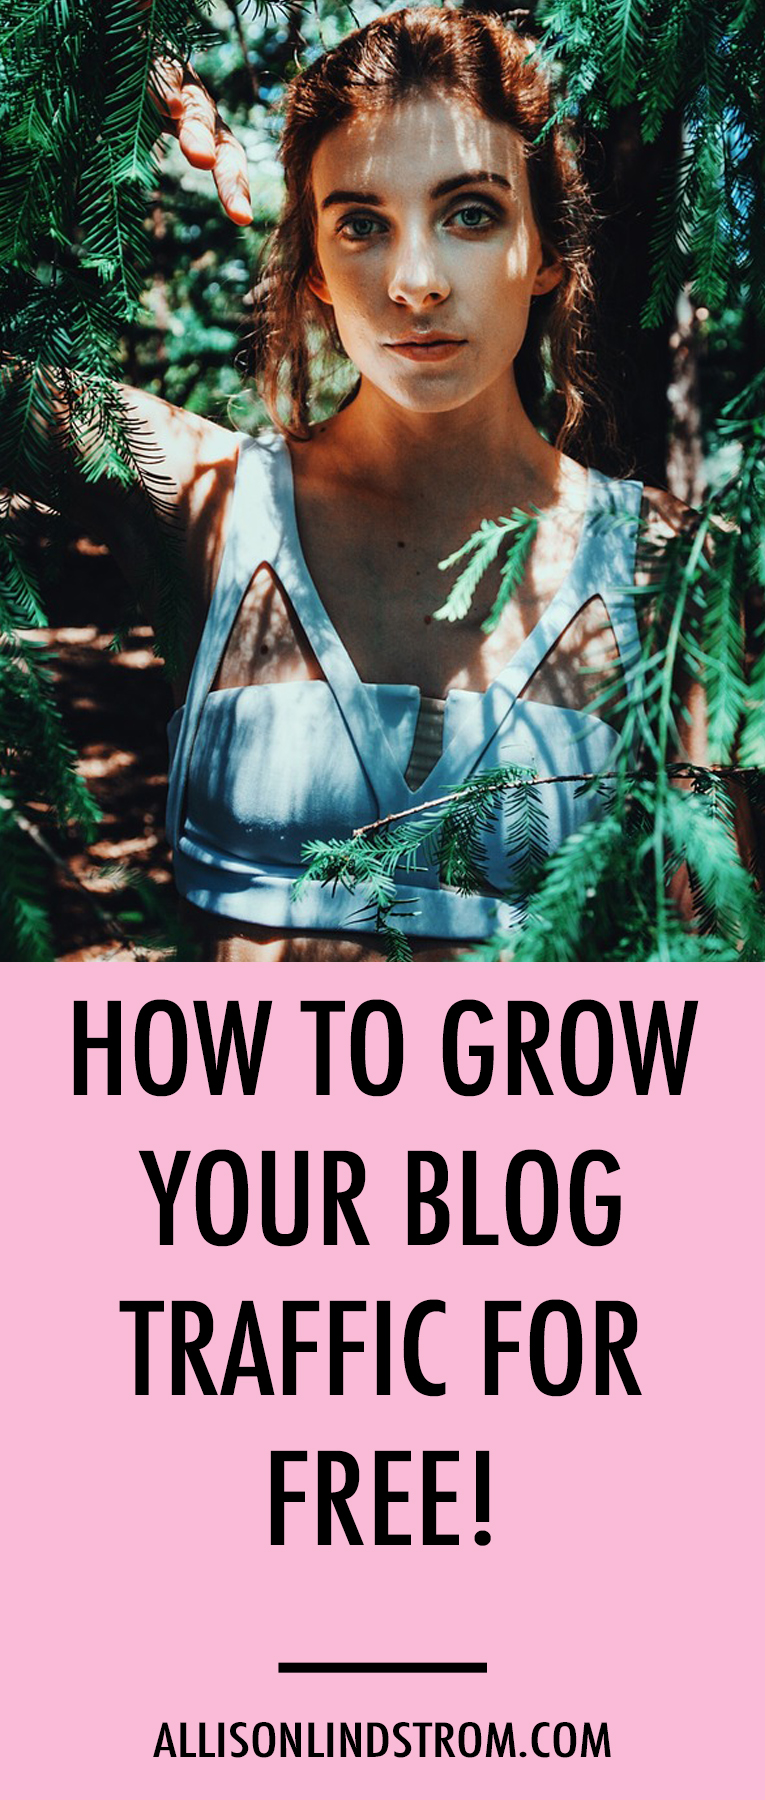 Want to know how to increase your blog traffic for free? You don't have to pay for ads to build an established following. Here are some of my favorite ways to gain new followers!